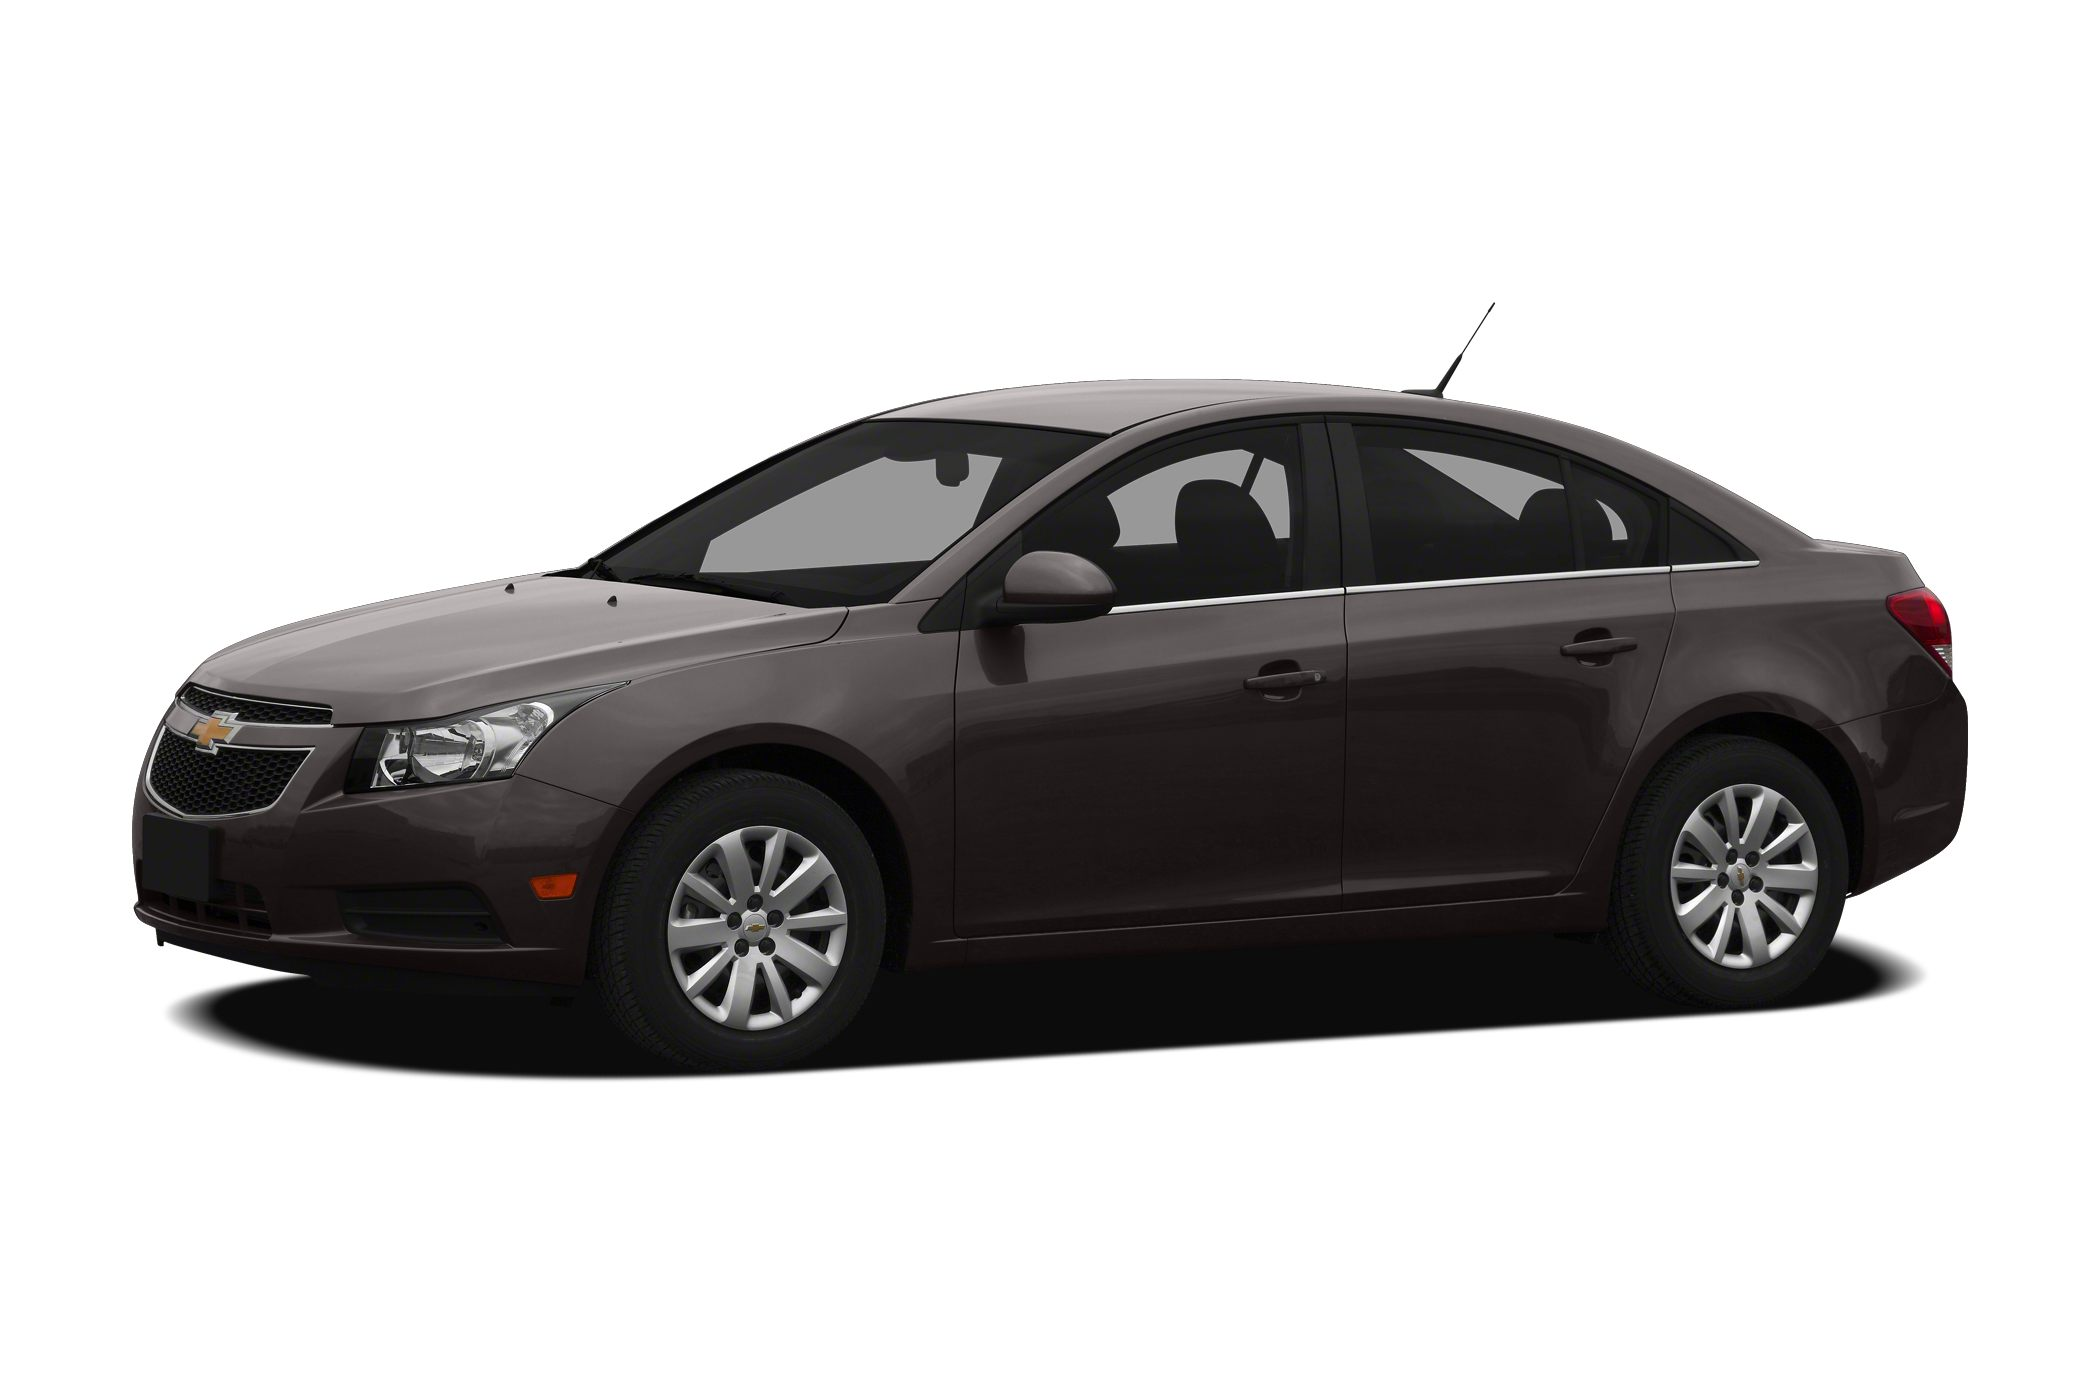 2012 Chevrolet Cruze LS CASH DEAL ONLY  CALL JEFF  866-395-2898 FOR MORE INFORMATION - ALL BANKS